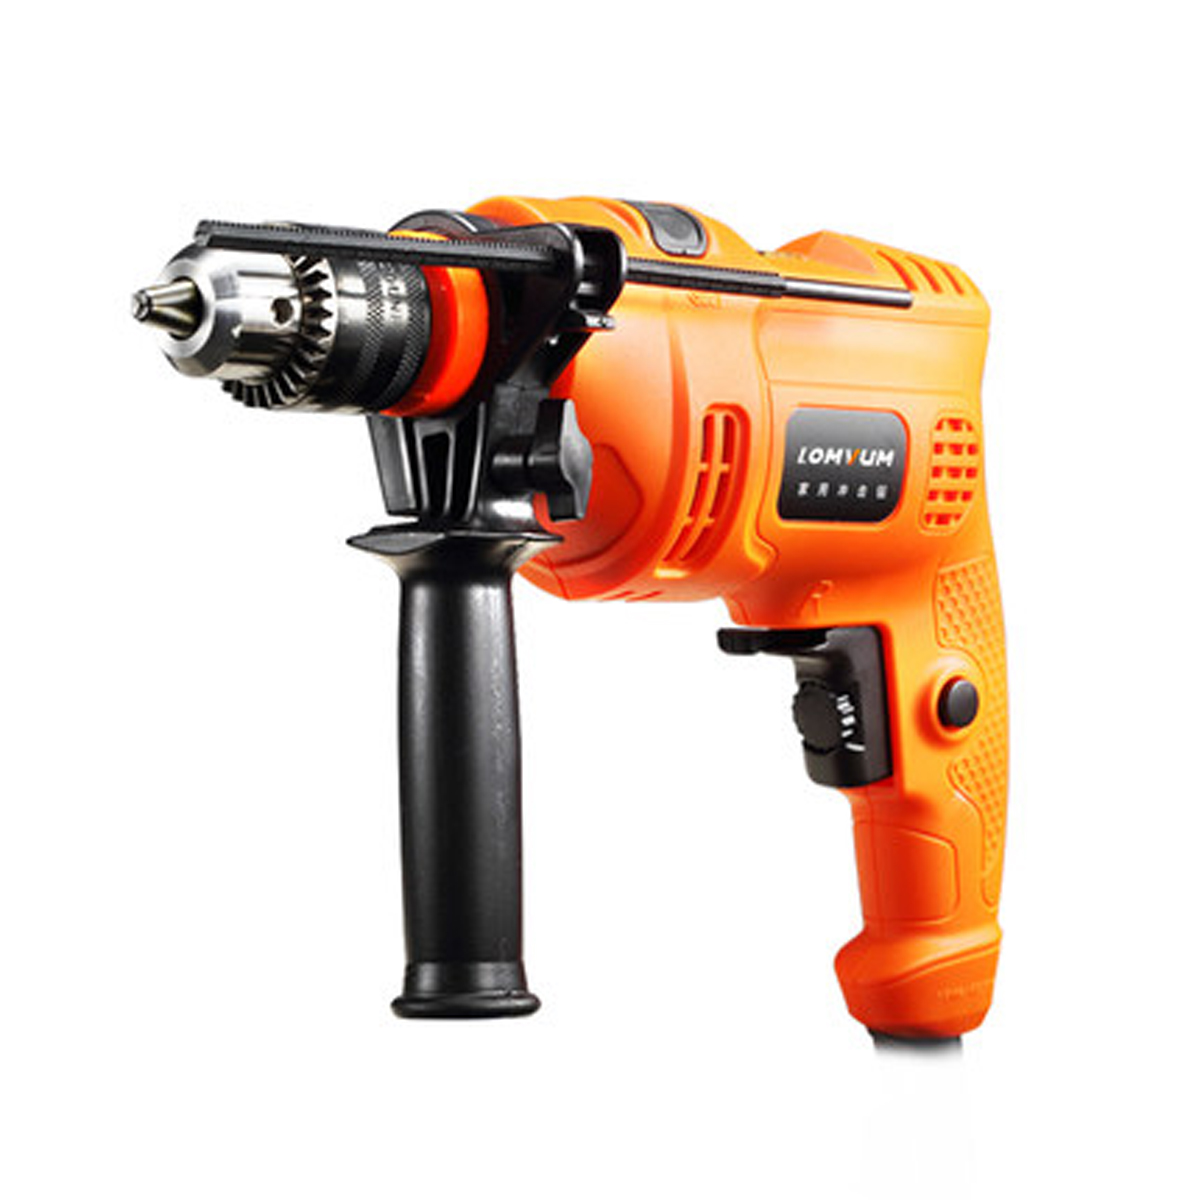 Lomvum Multi-function 600W 220V Impact Drill Electric Screwdriver Angle Grinder Power Tools Kit